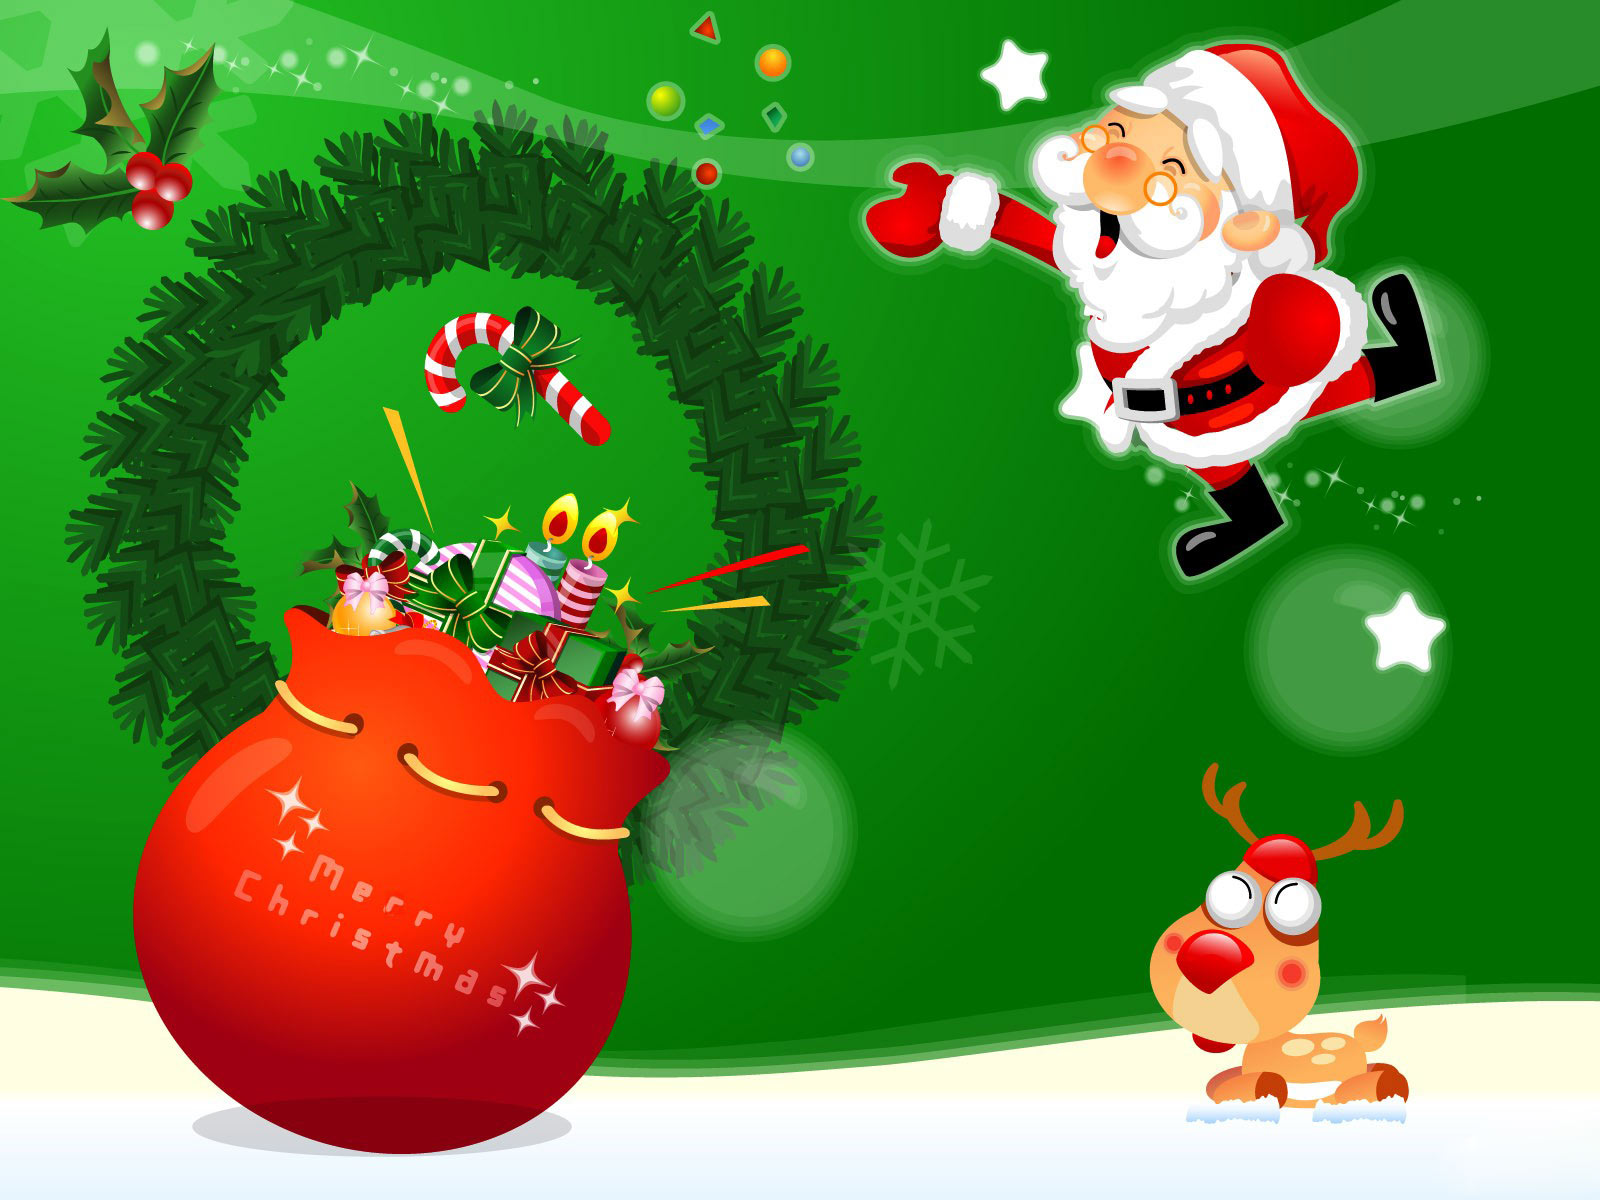 Hot Wallpapers Blogs 2011 Christmas Wallpapers For Desktop 1600x1200